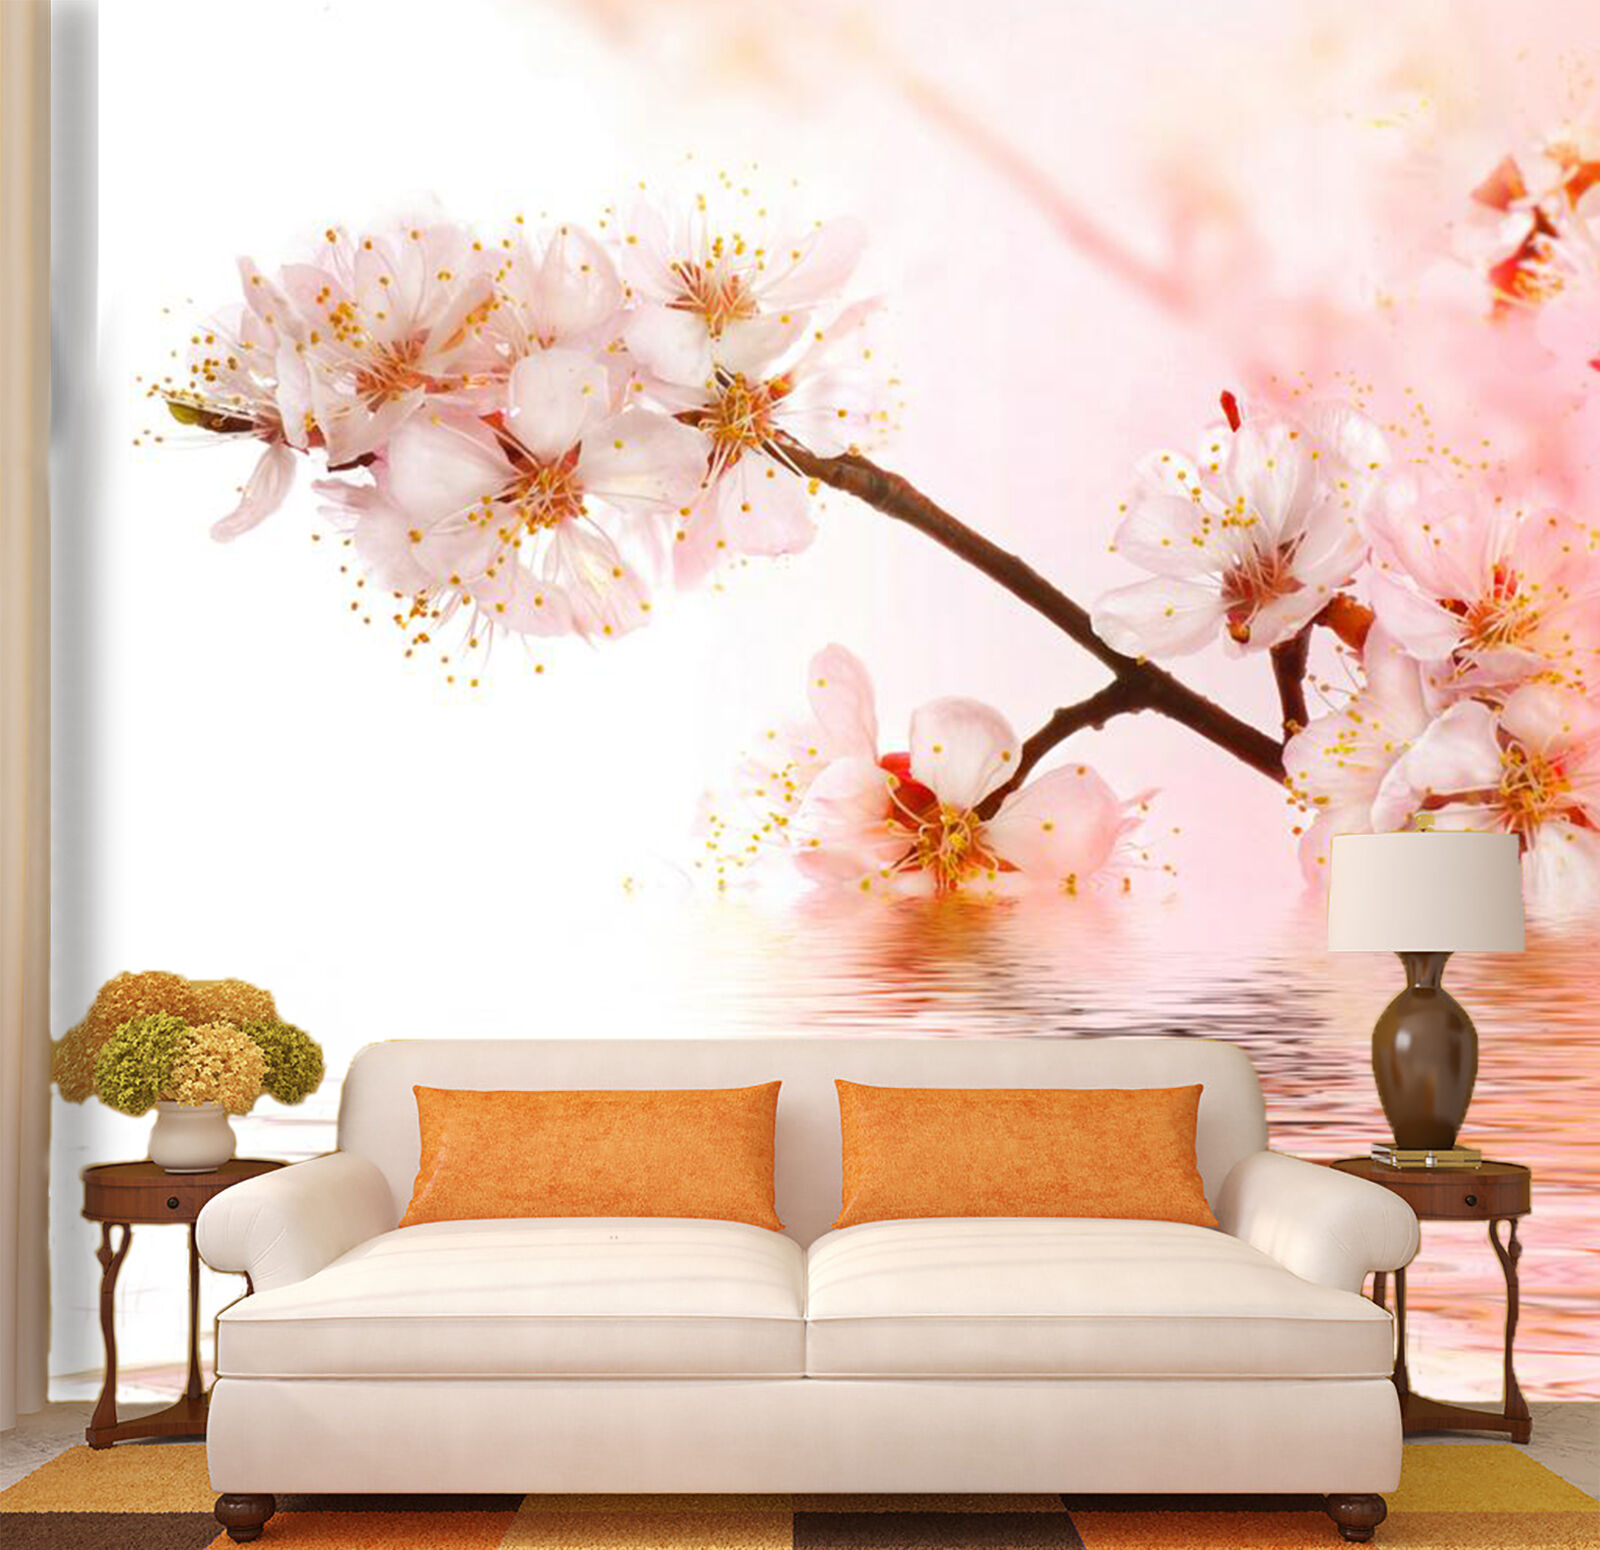 3D Fresh Sweet Flowers 2 Wall Paper Print Decal Wall Deco Indoor wall Mural